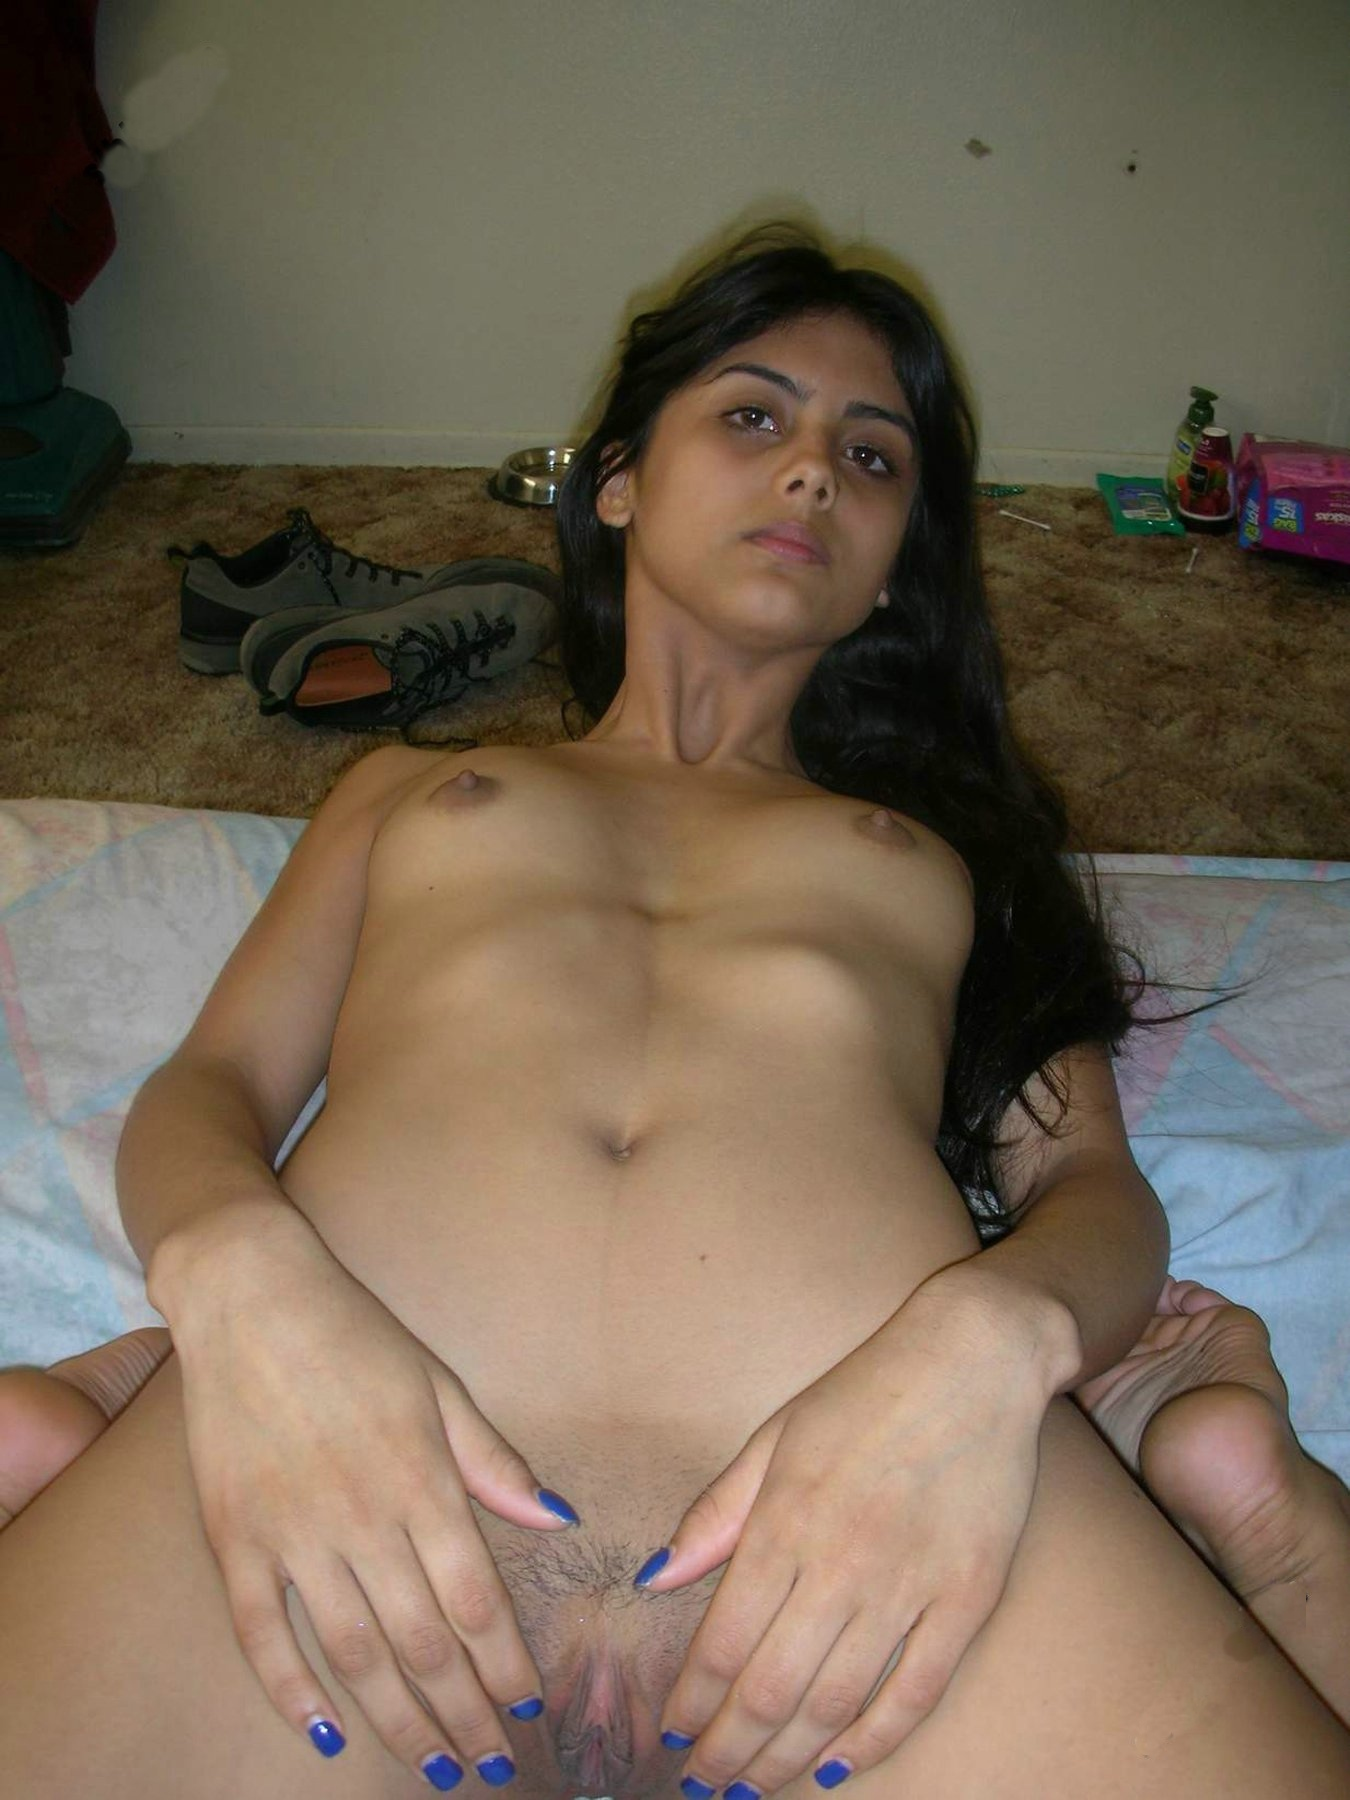 wife-fuck-young-virgin-small-boobs-girls-nude-haugh